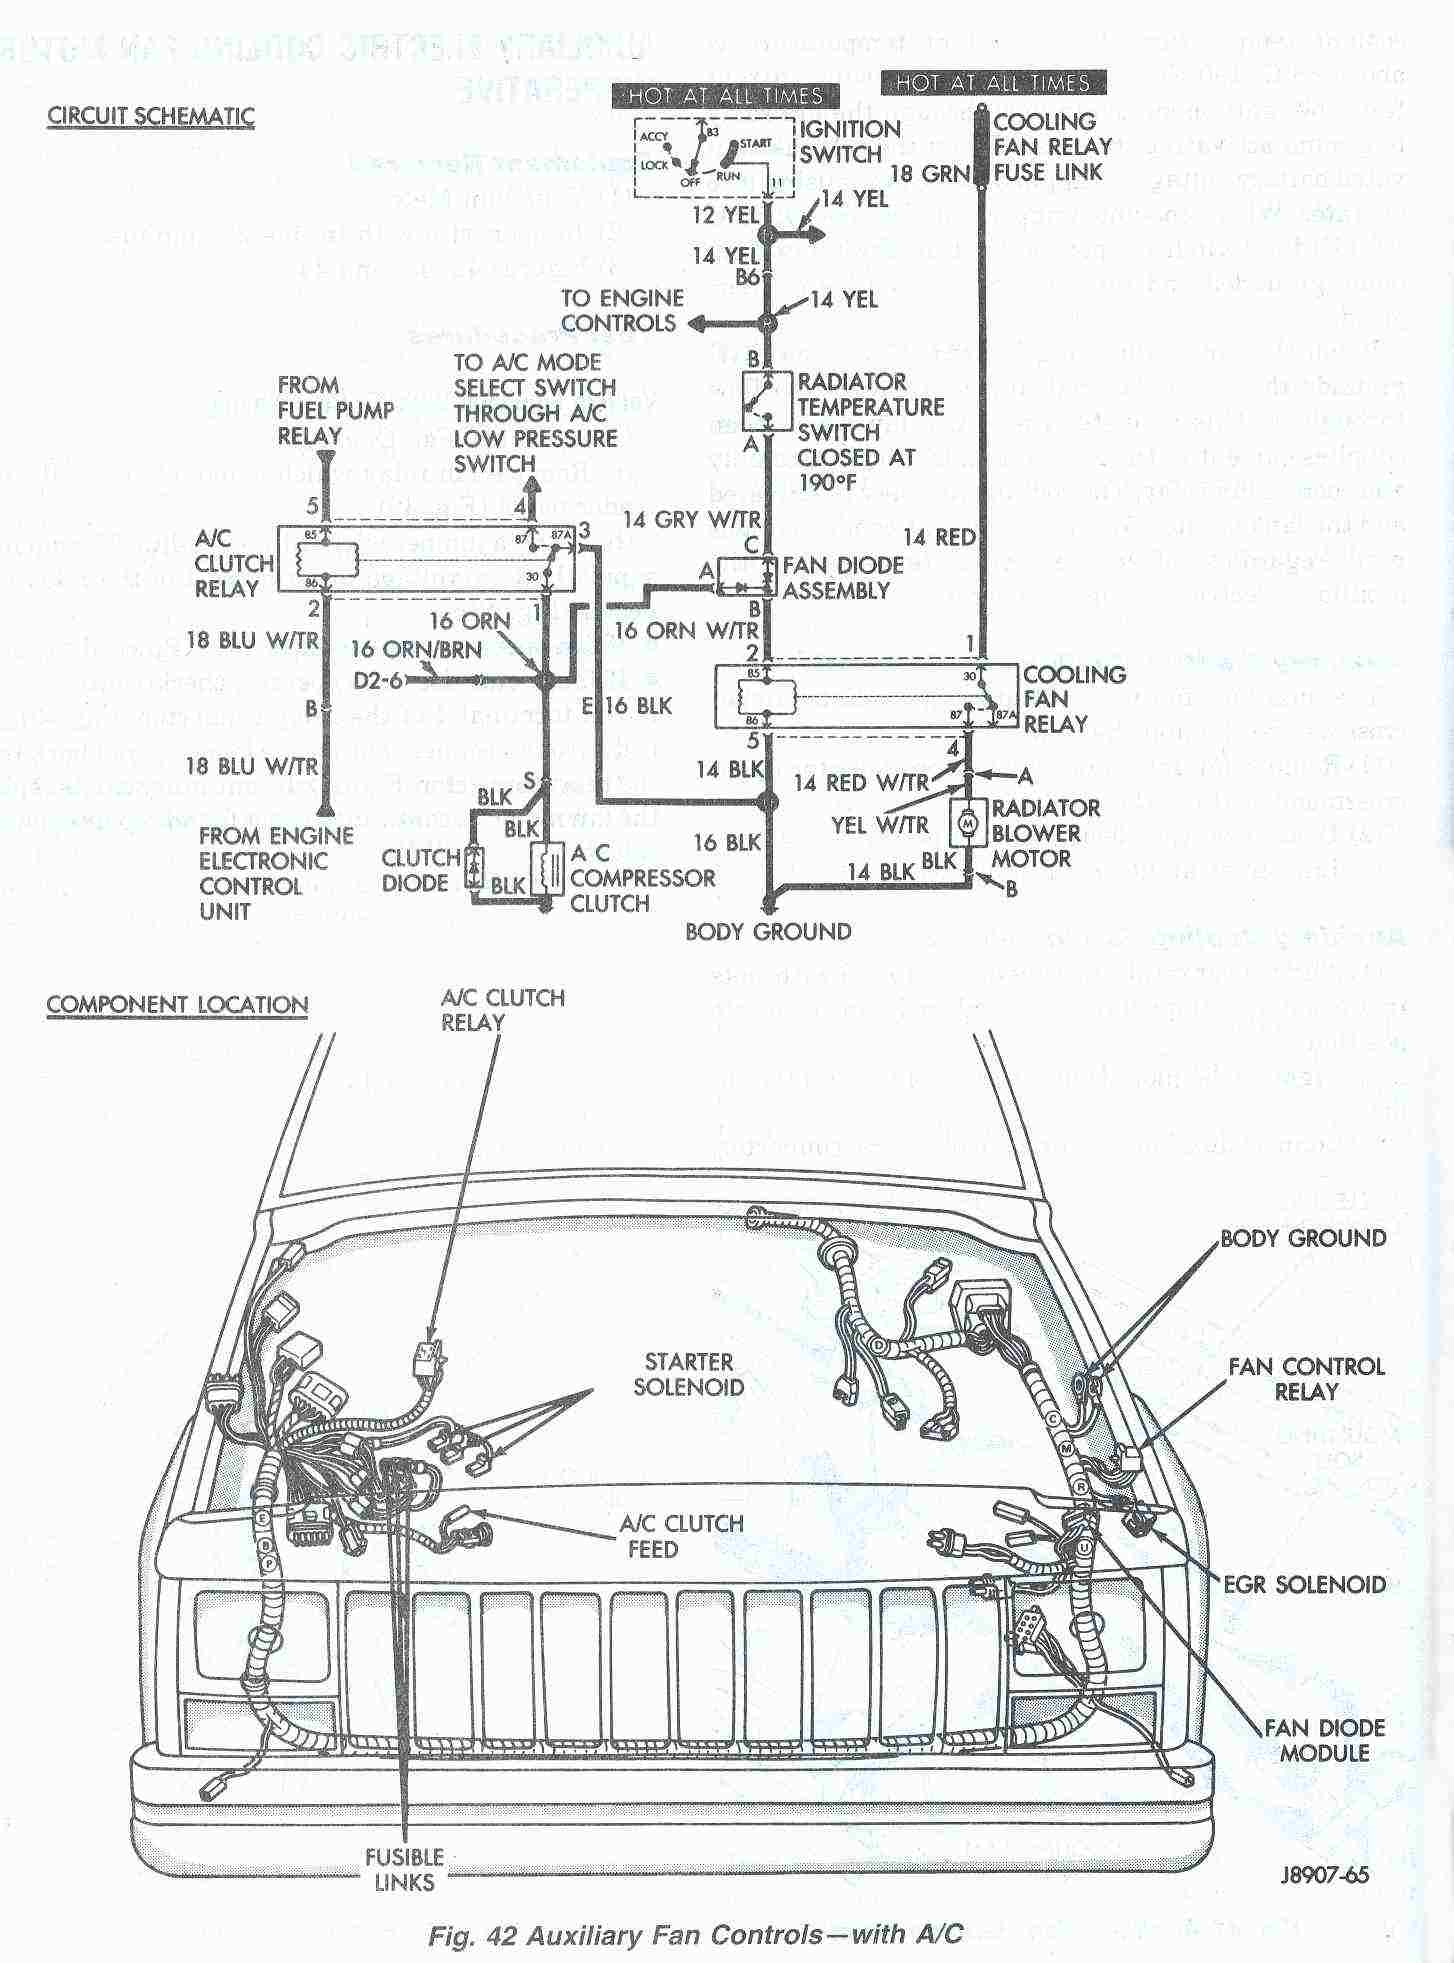 Auxiliary_Fan_Schematic_Fig_42 jeep cherokee cooling system electric cooling fan 89 jeep cherokee wiring harness at arjmand.co